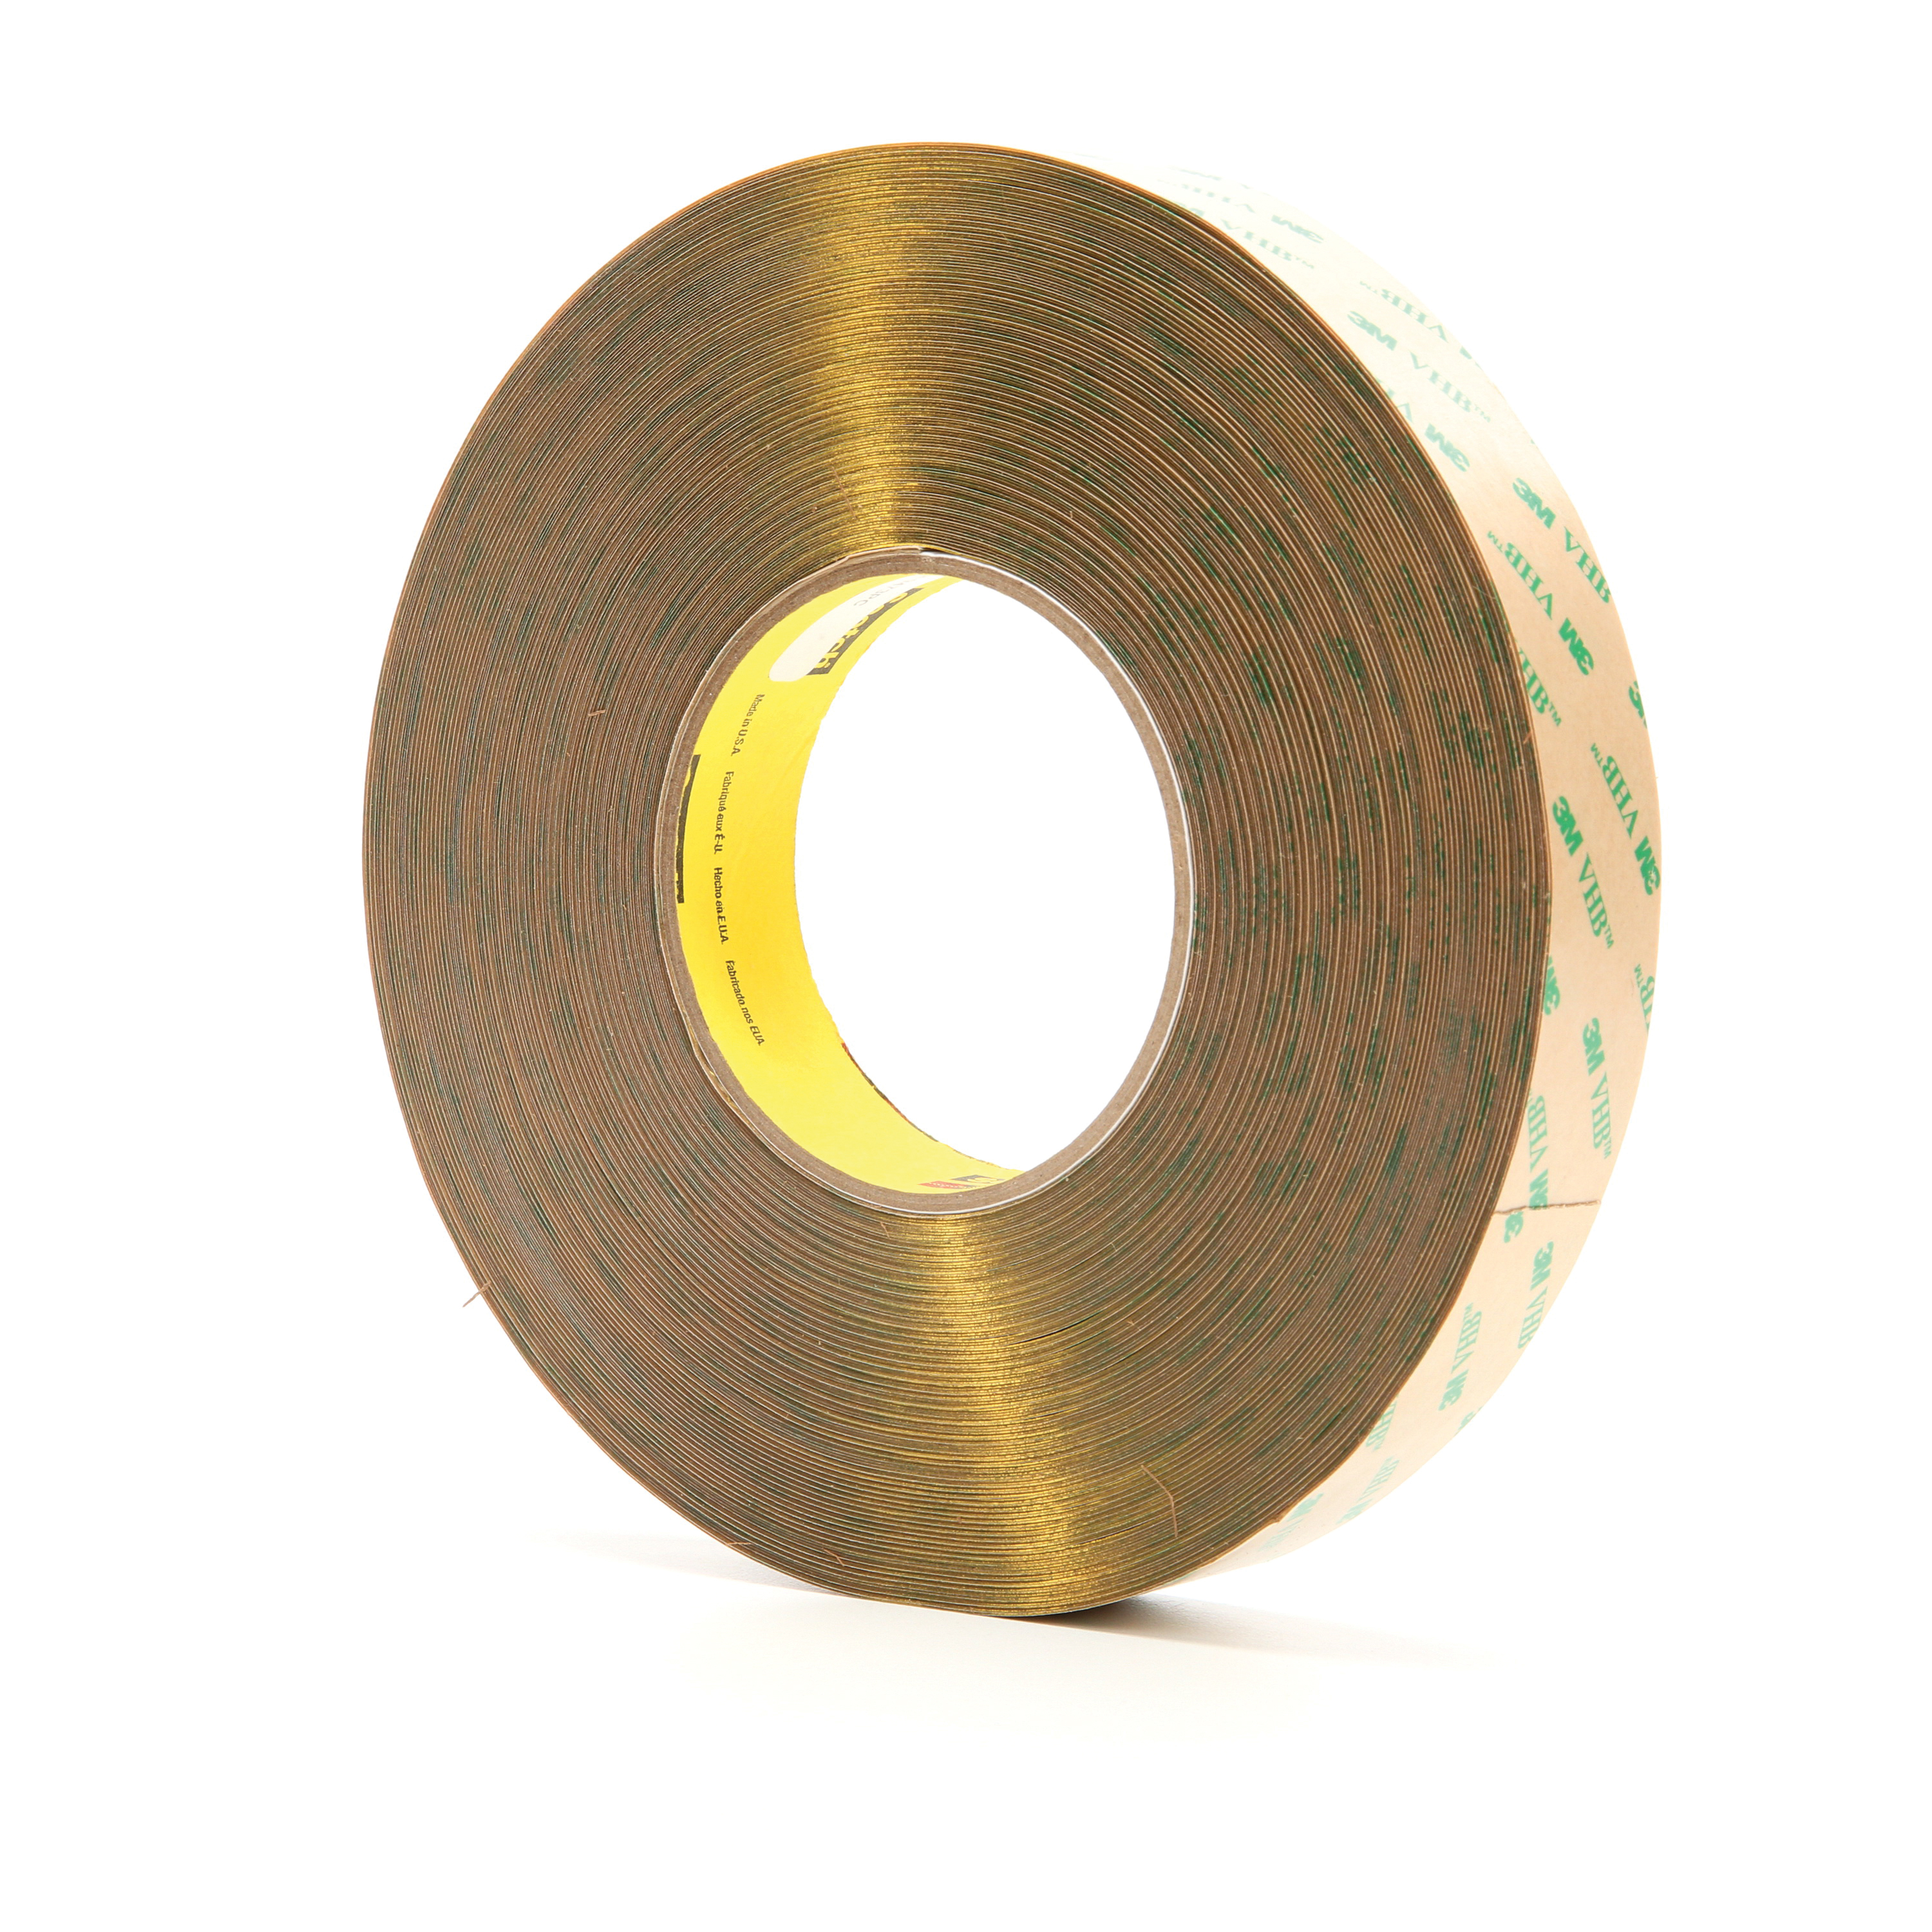 3M™ VHB™ 021200-13969 High Performance Low Tack Adhesive Transfer Tape, 60 yd L x 1 in W, 14.2 mil THK, 10 mil 100MP Acrylic Adhesive, Clear